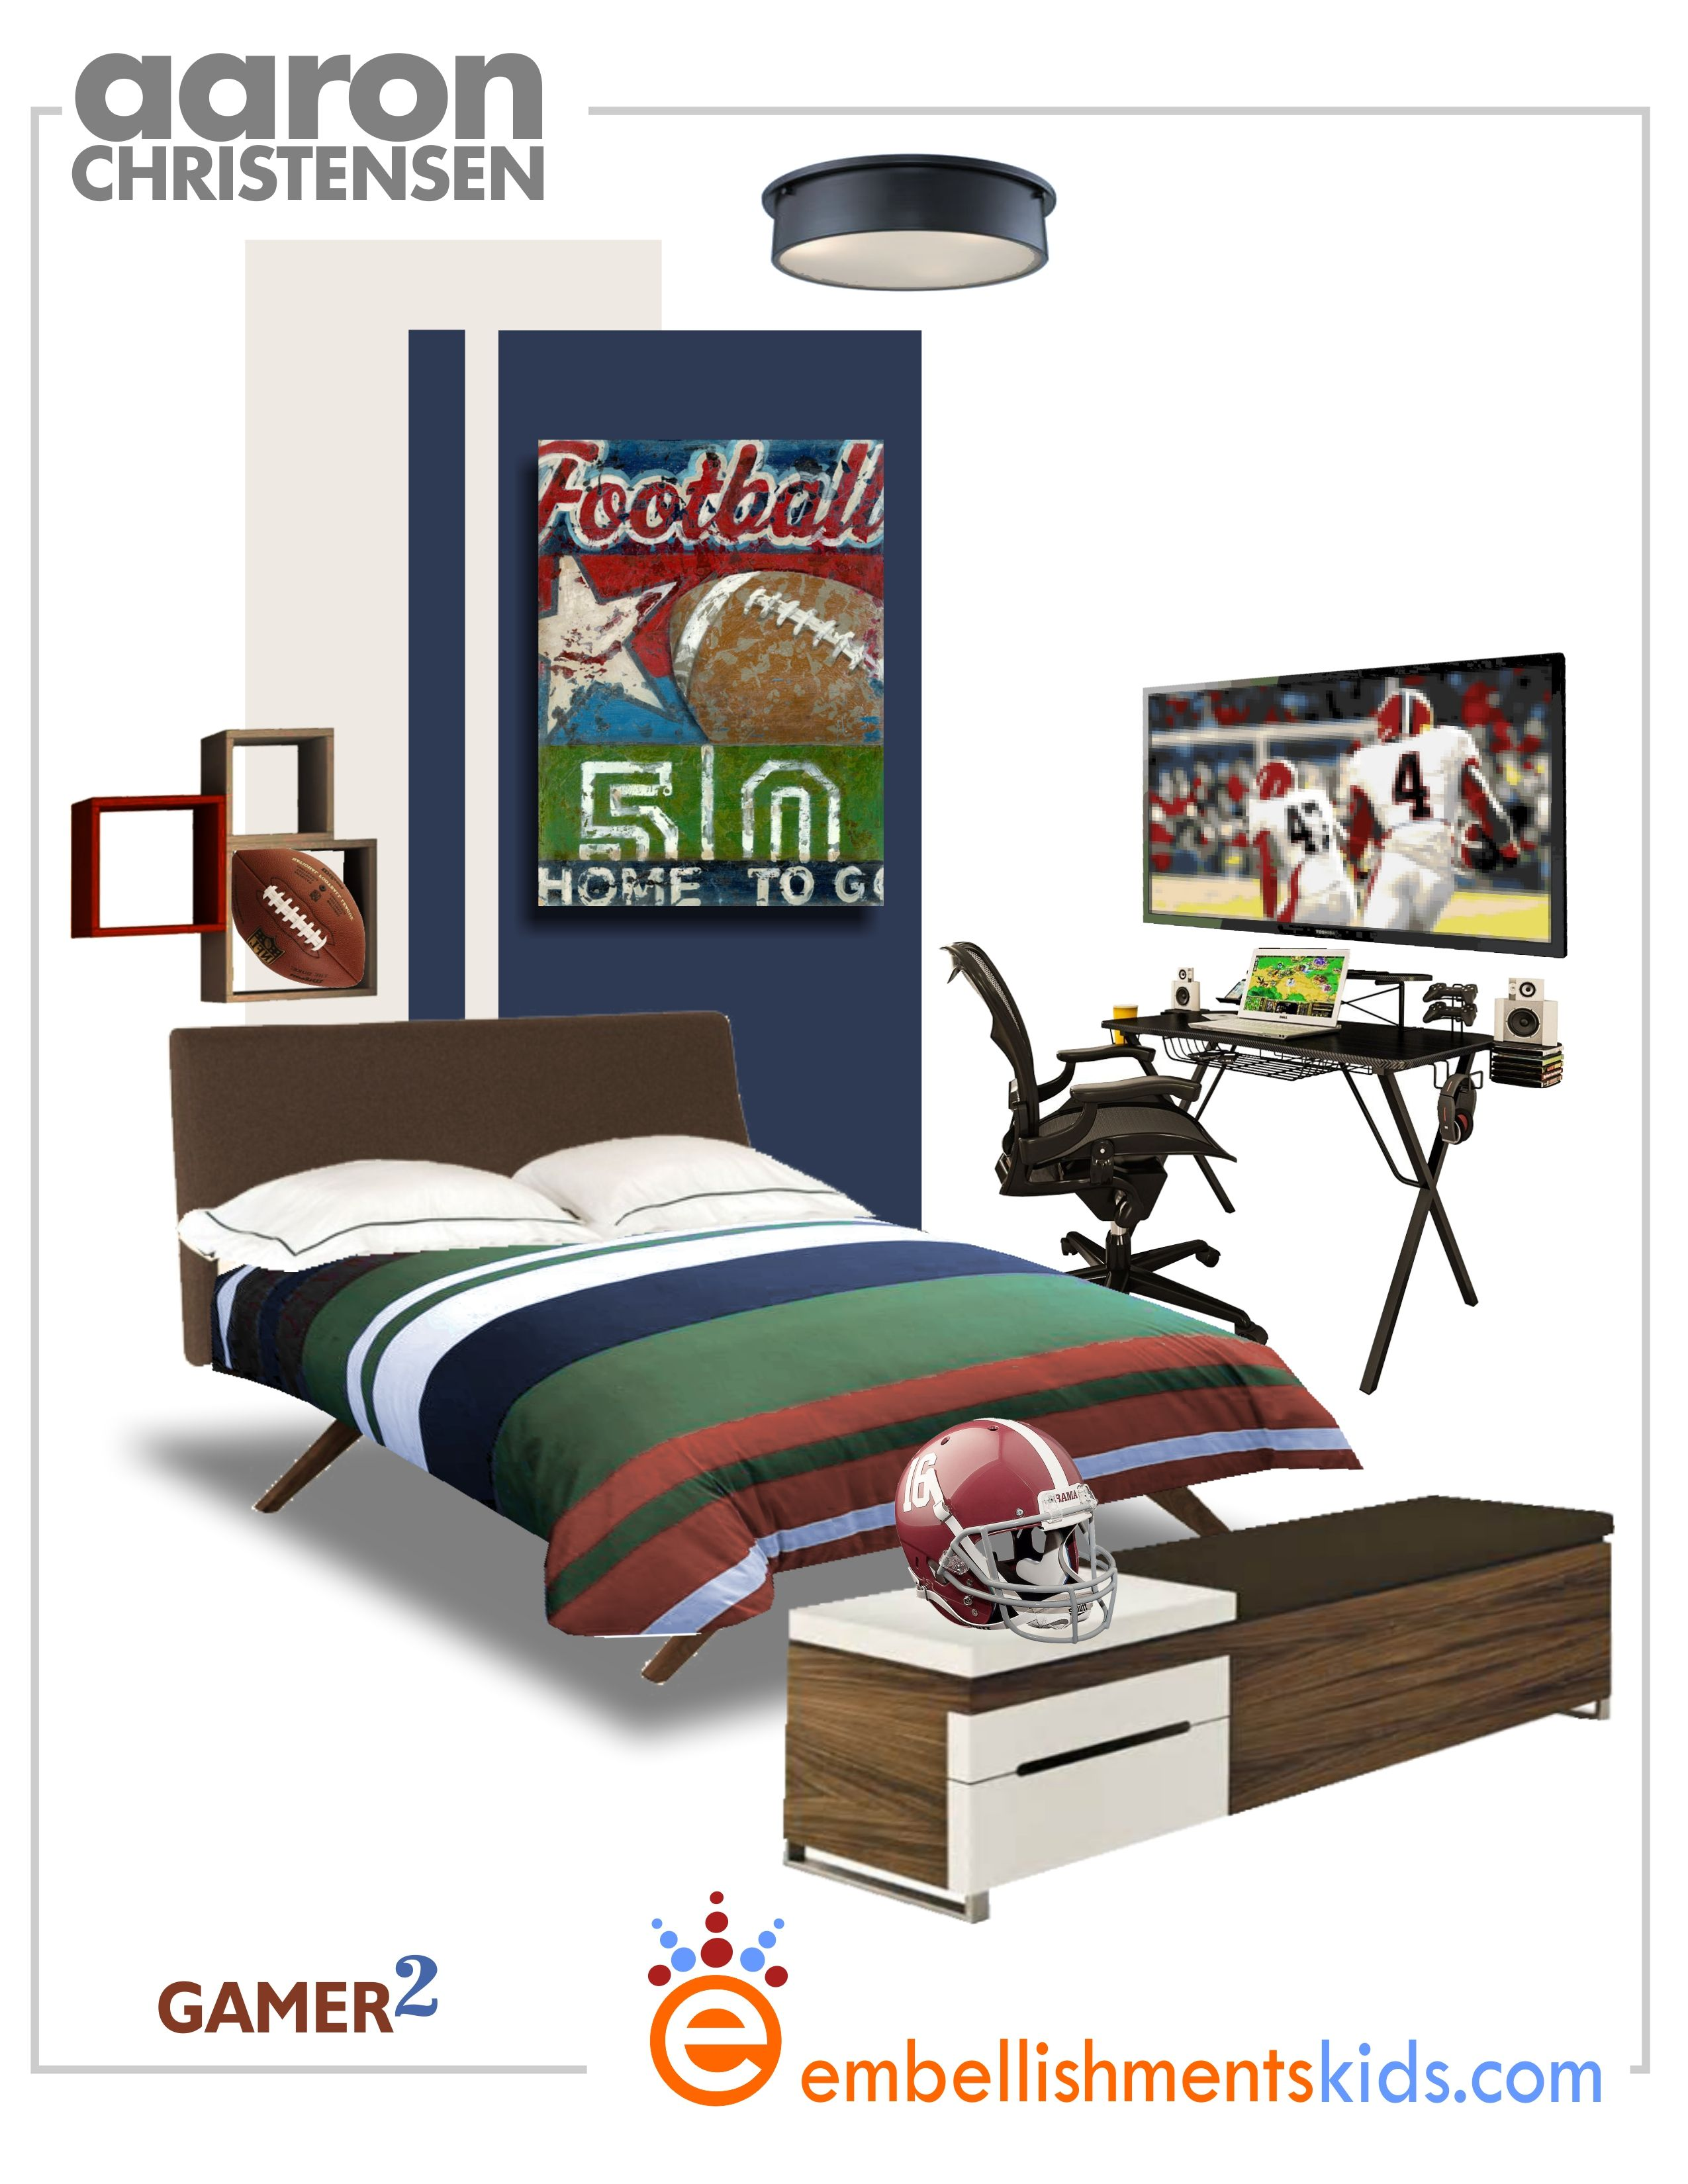 2150f60d89e Football Sports Gamer and Fan s Room Decor and Idea Mood board featuring  Line up Wall Art by Aaron Christensen